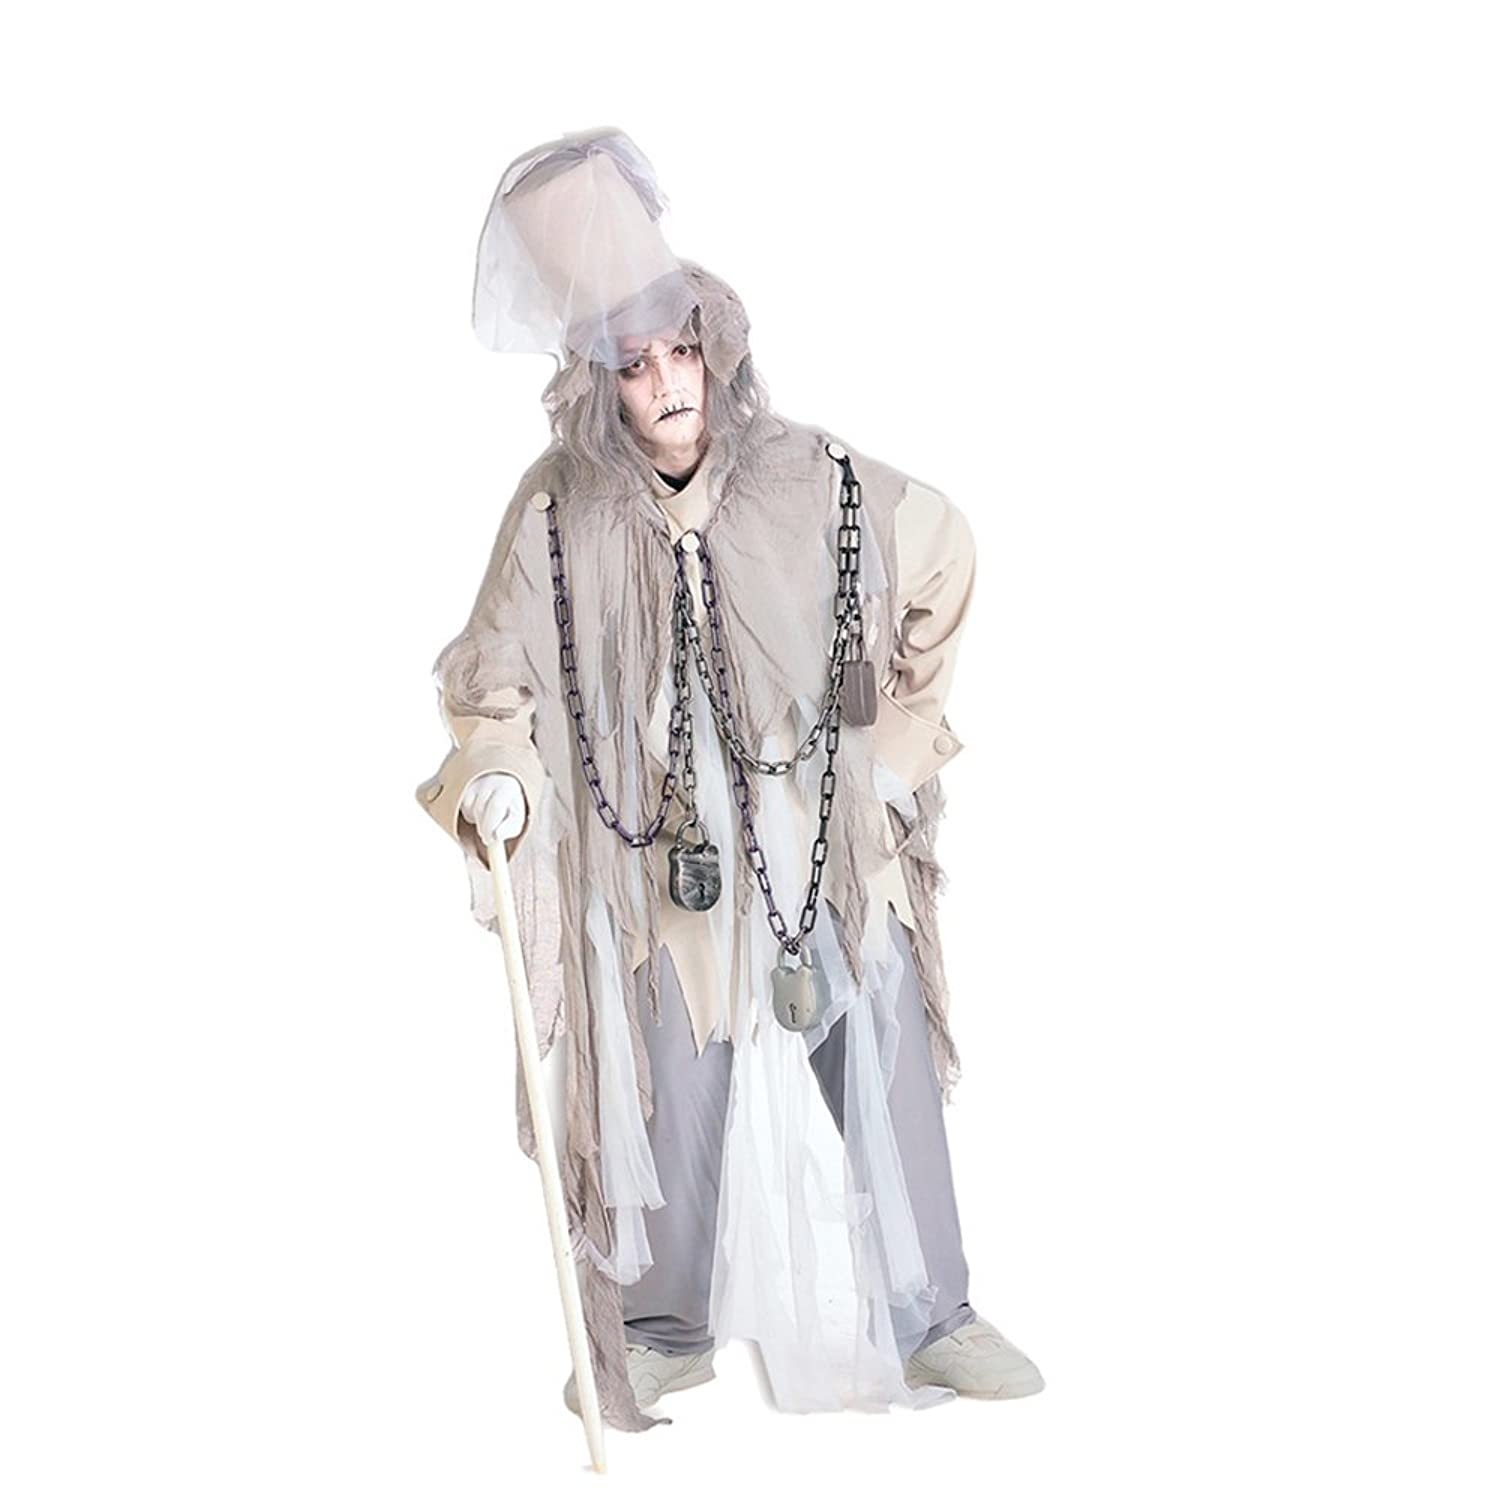 Dickens Marley outfit for Halloween and fancy dress parties